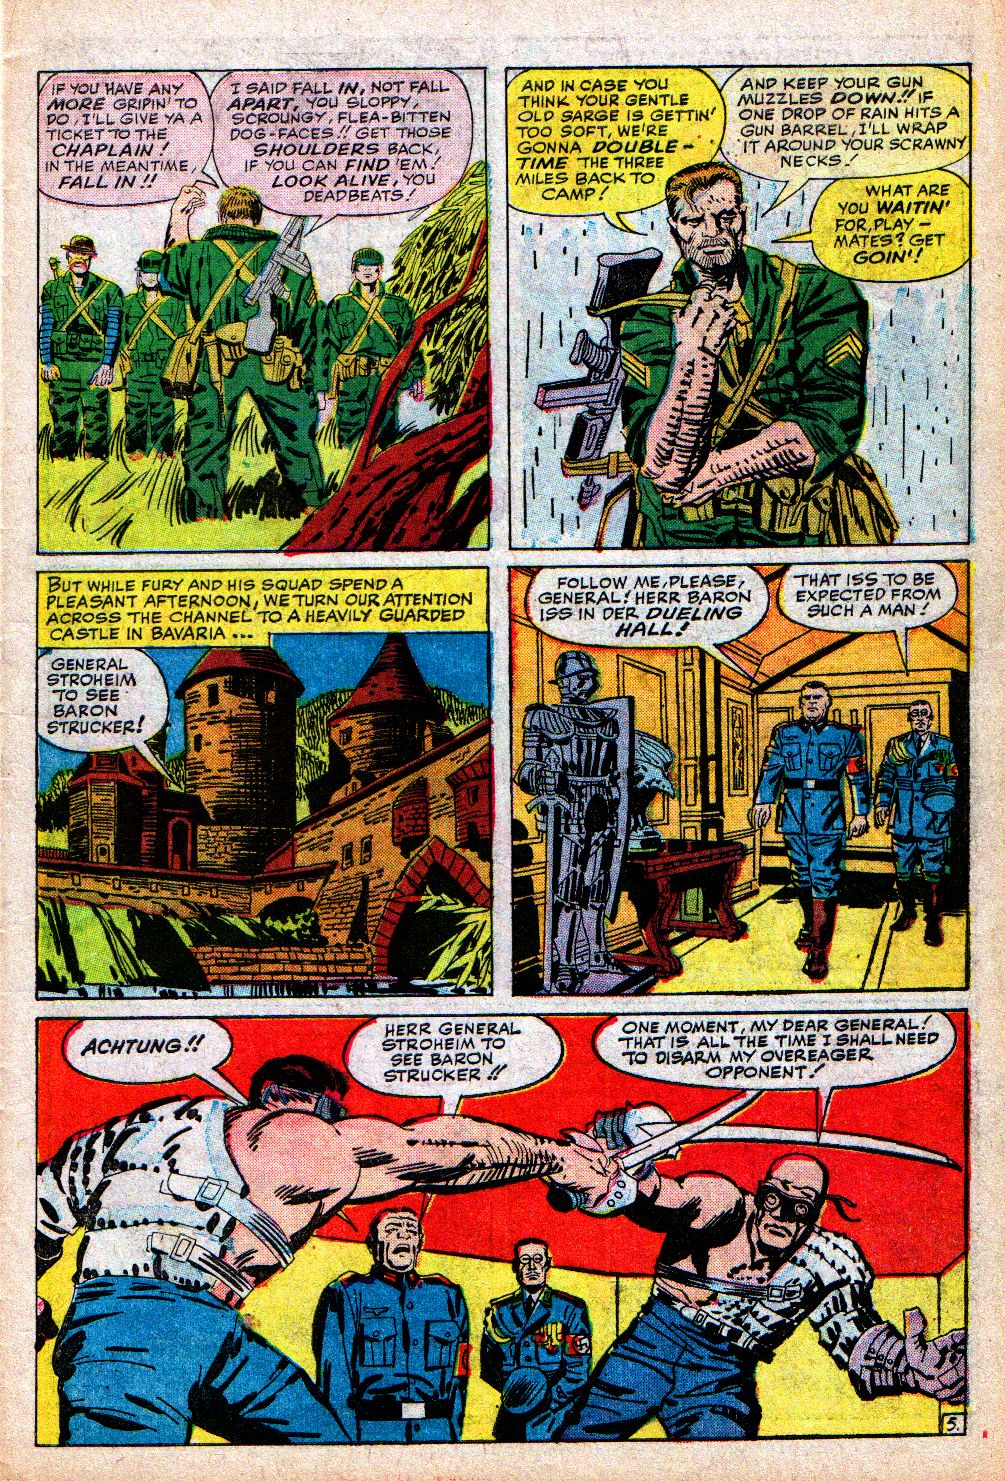 Read online Sgt. Fury comic -  Issue #5 - 7